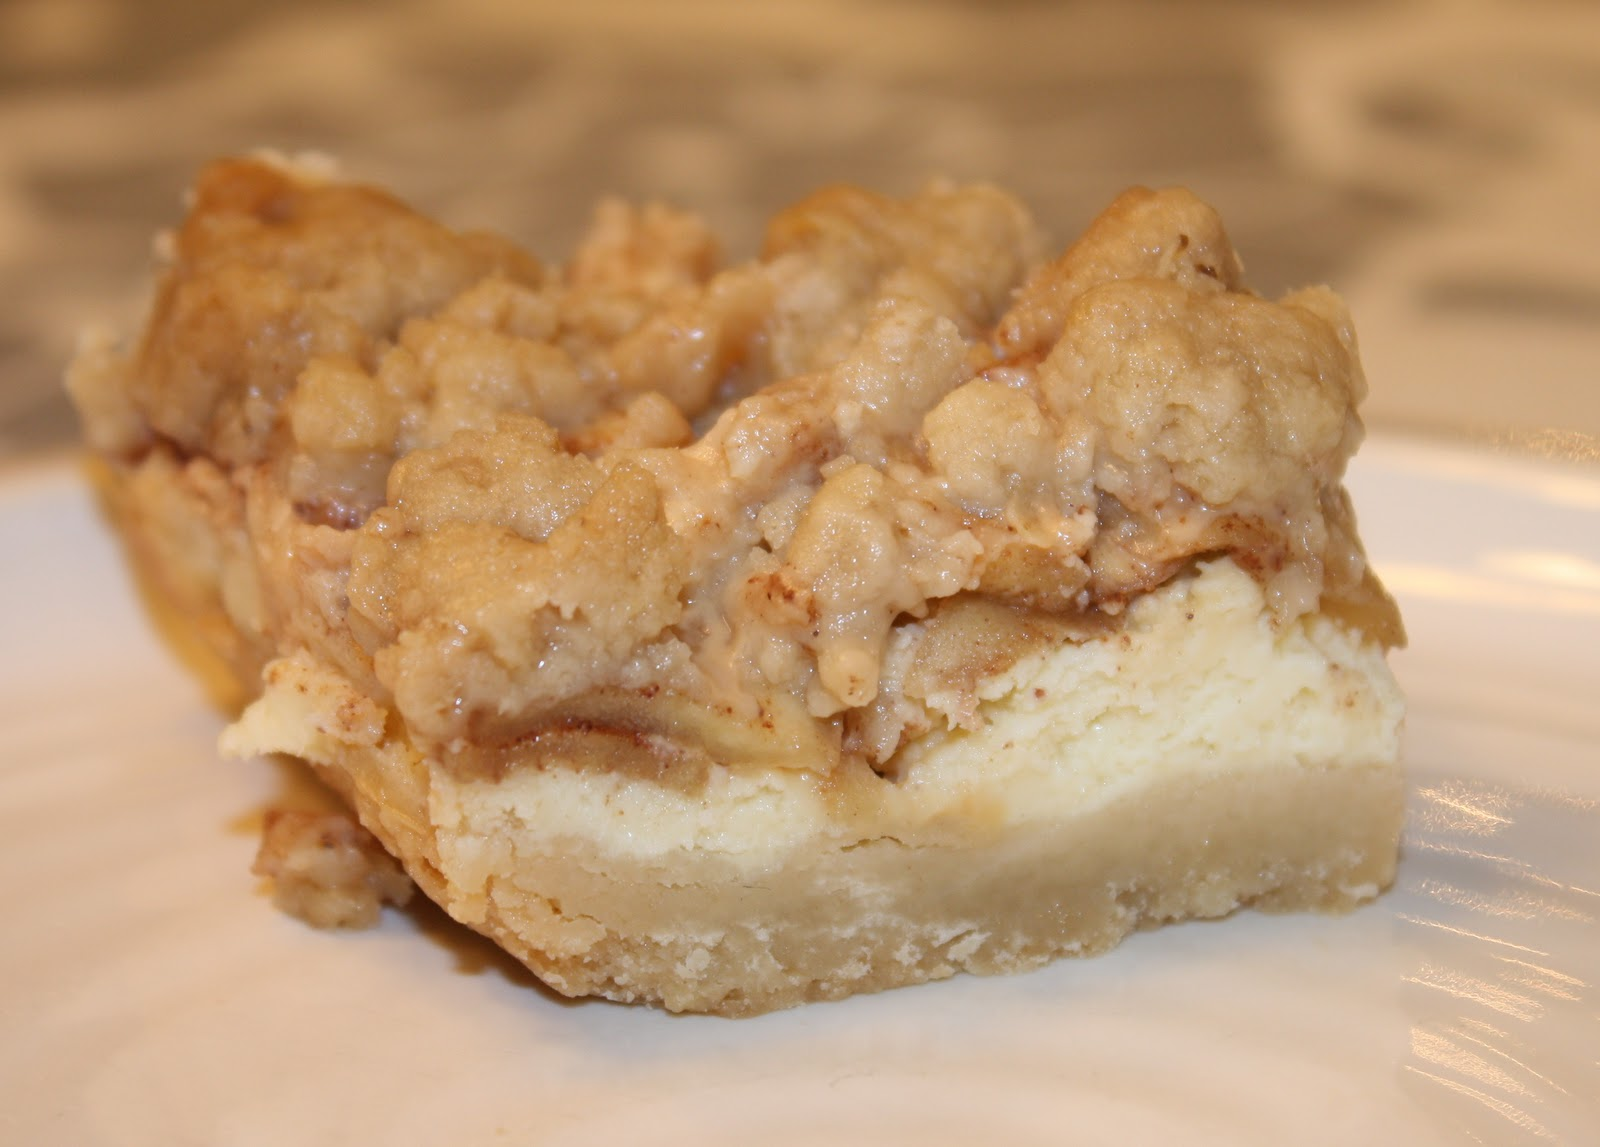 Kuki's Kookbook: Caramel Apple Cheesecake Bars